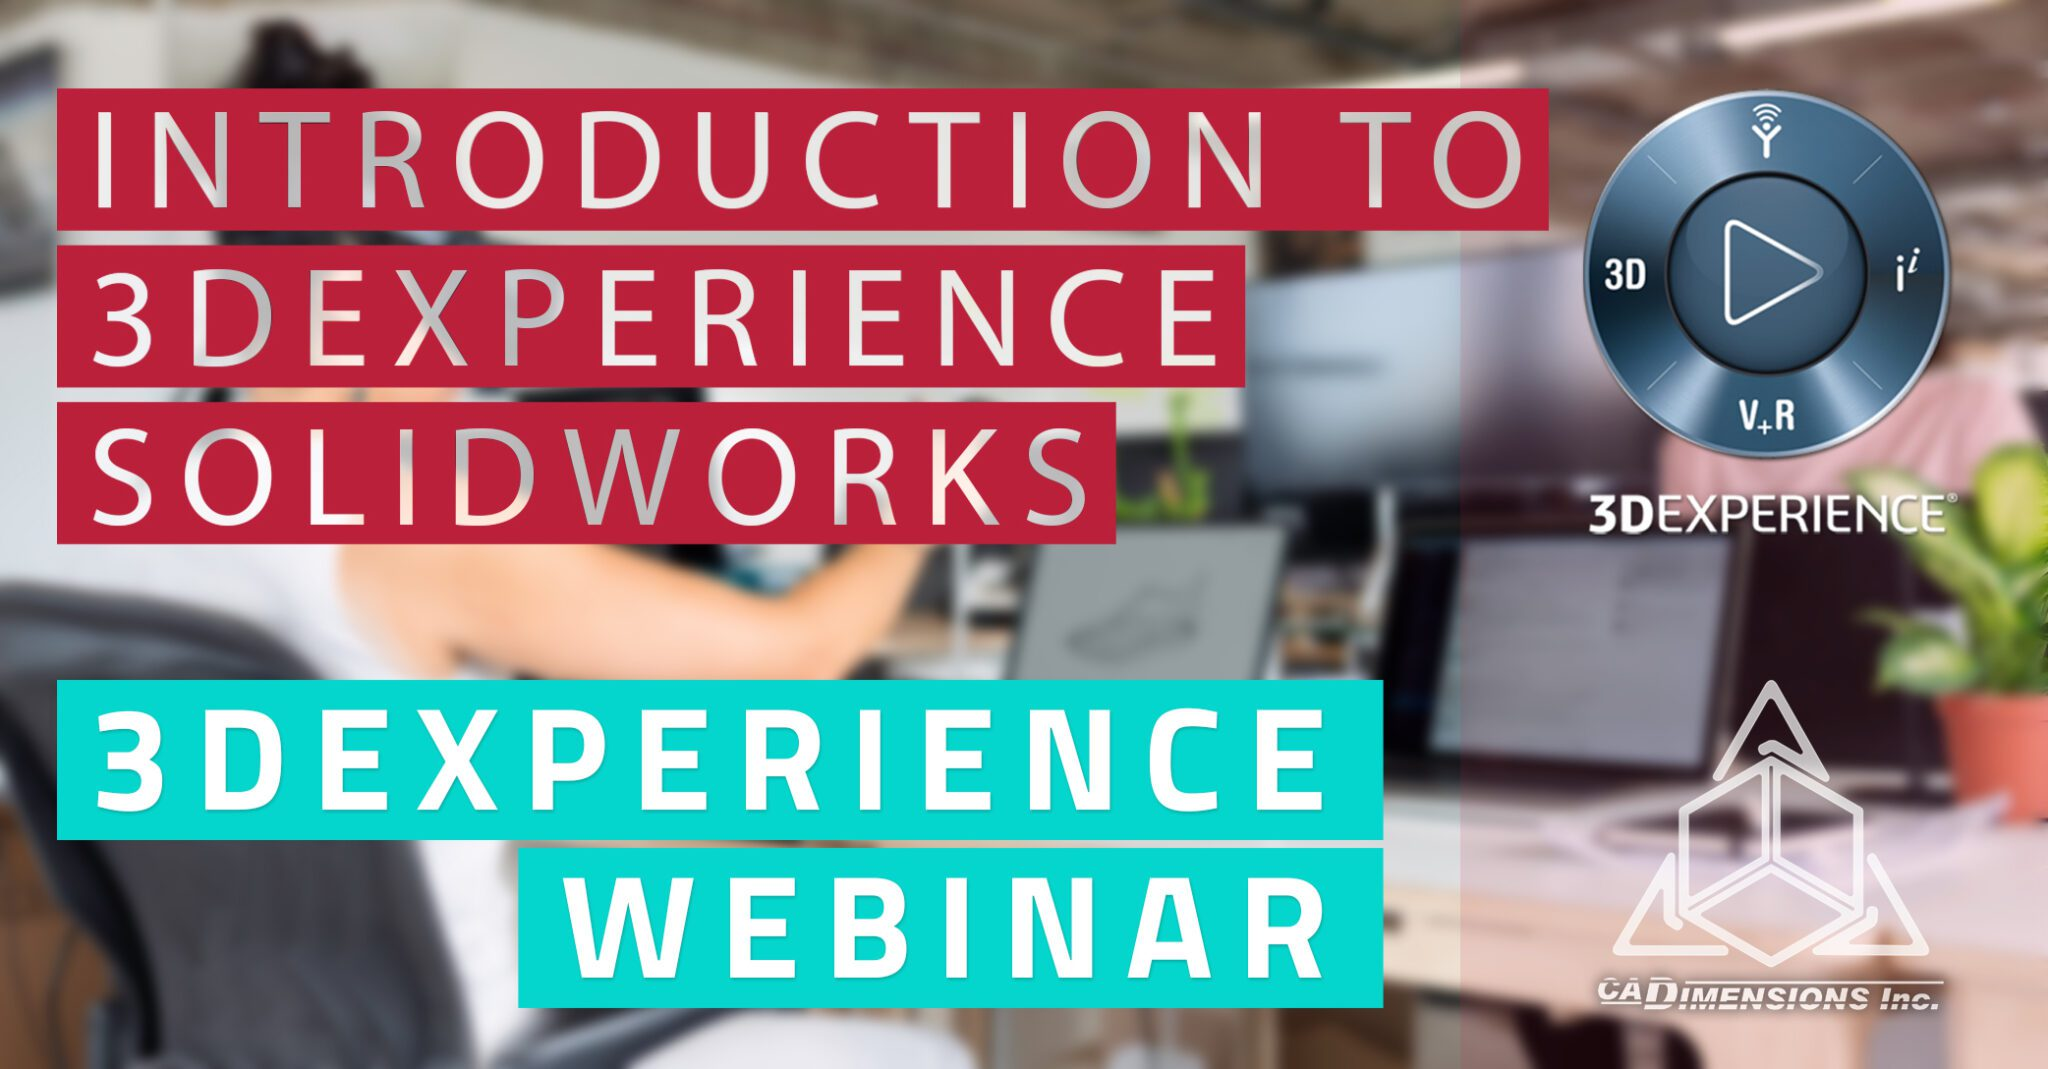 introduction to 3dxperience solidworks webinar